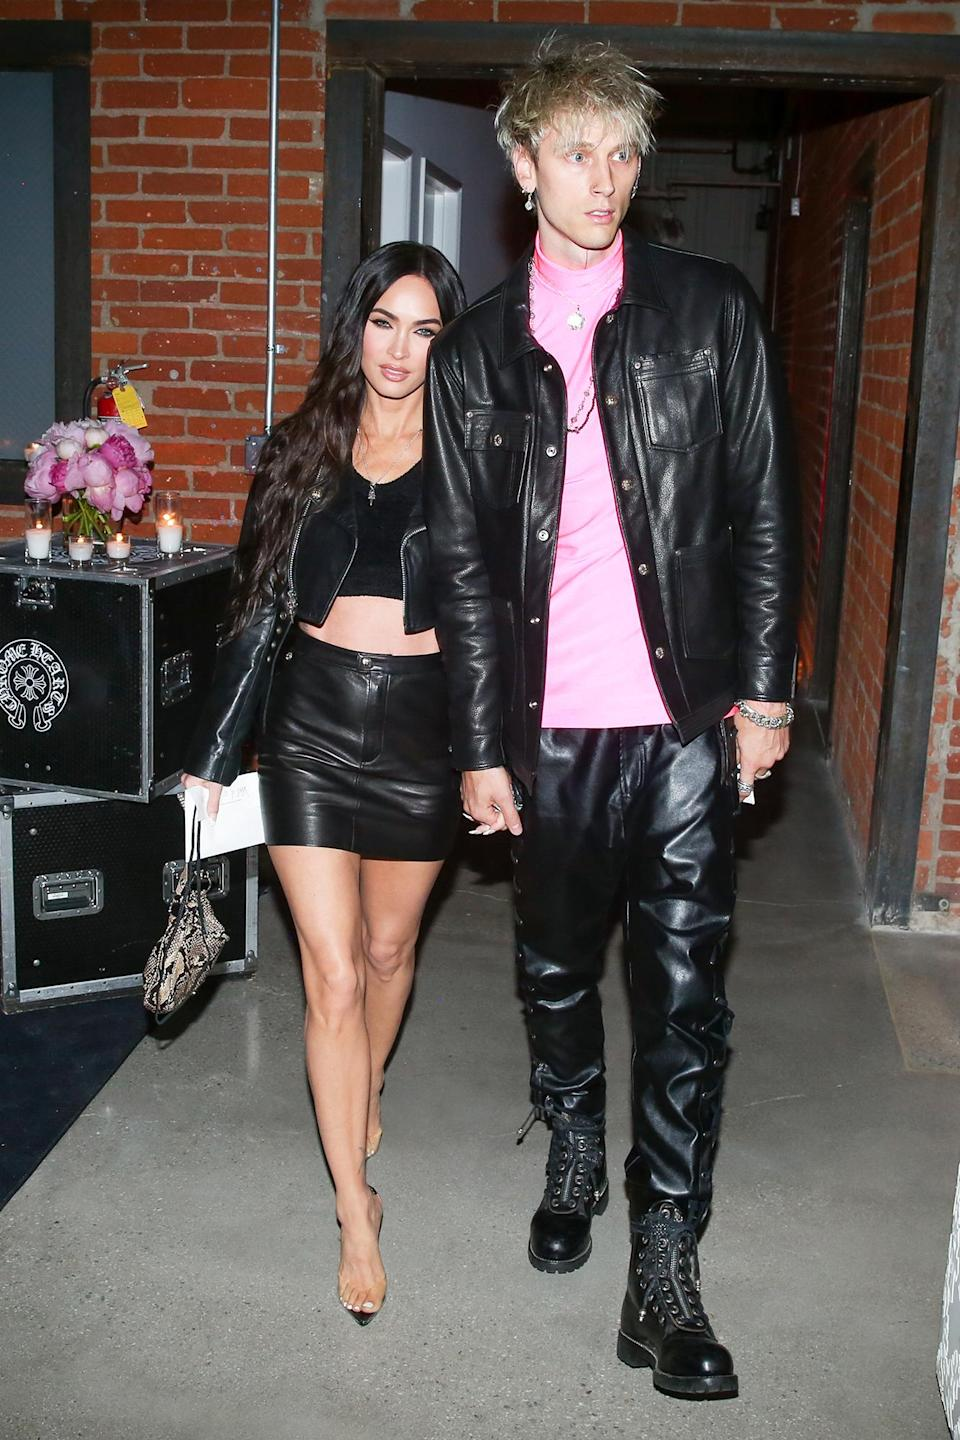 <p>Megan Fox and Machine Gun Kelly step out in coordinating leather outfits to celebrate Jesse Jo Host's Sugar Jones Collection for Chrome Hearts at a dinner in L.A. on June 10. </p>